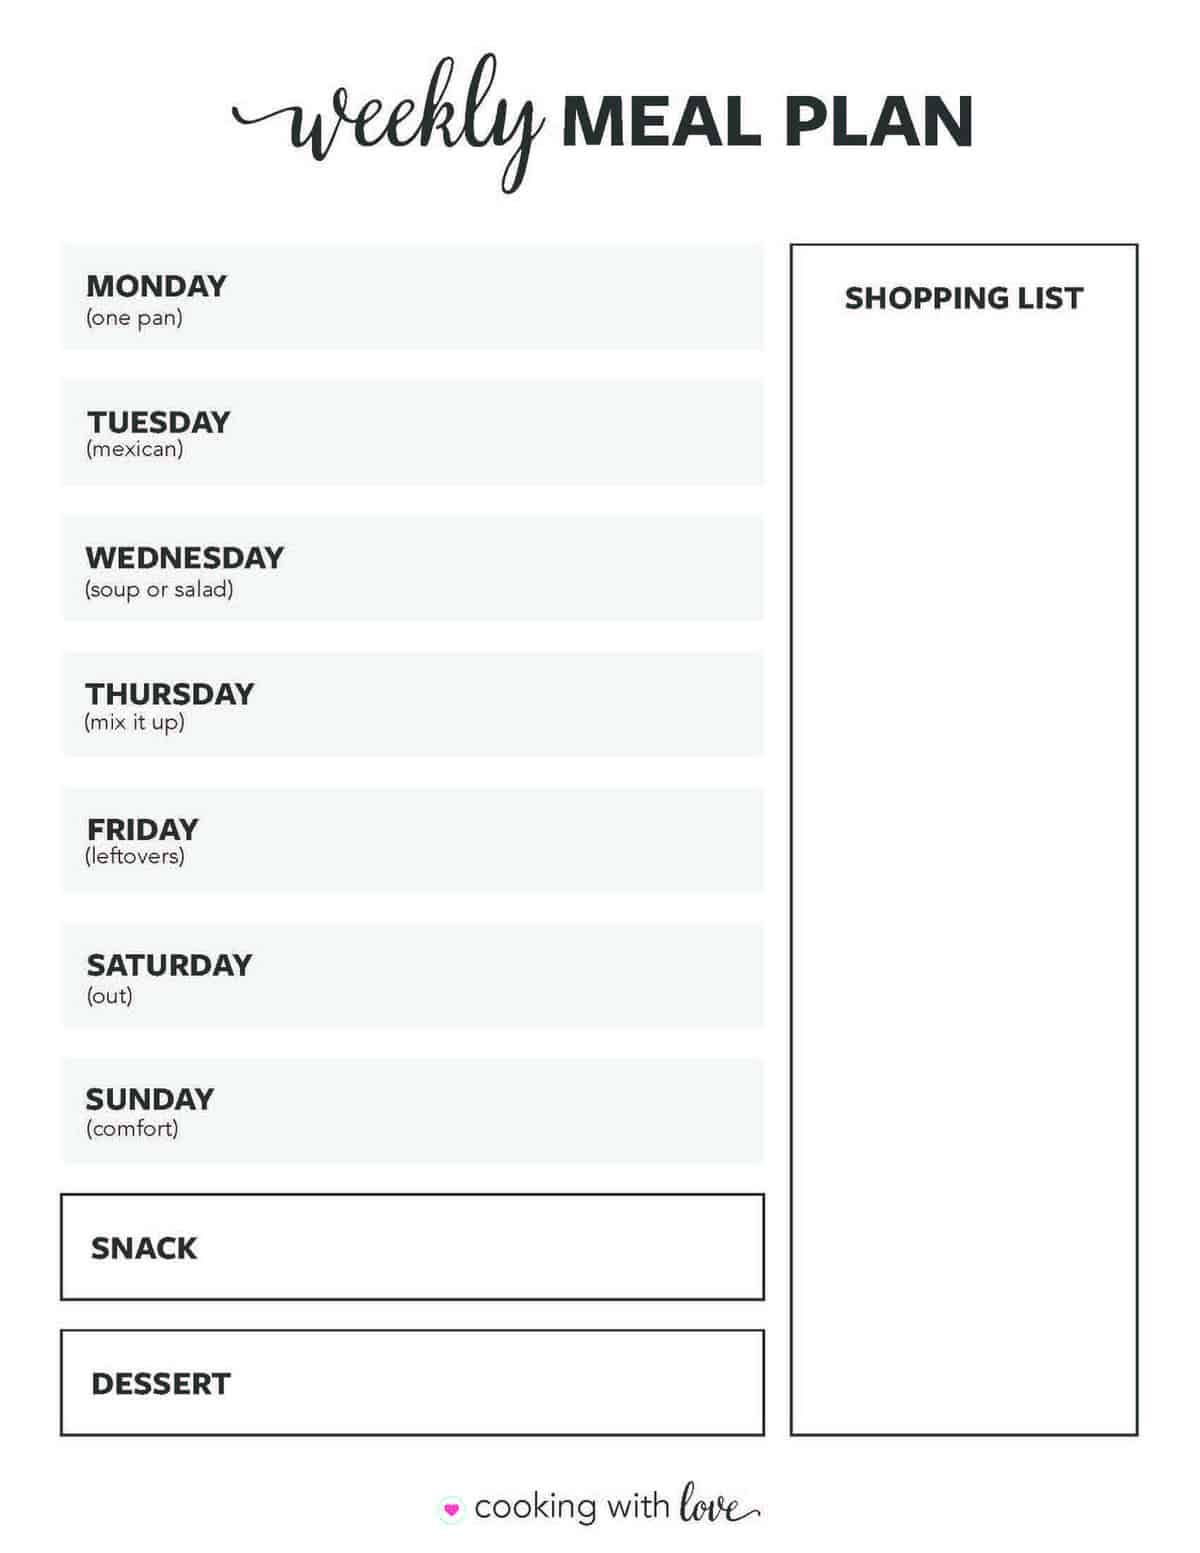 Free Printable Weekly Meal Plan Templates I Heart Naptime